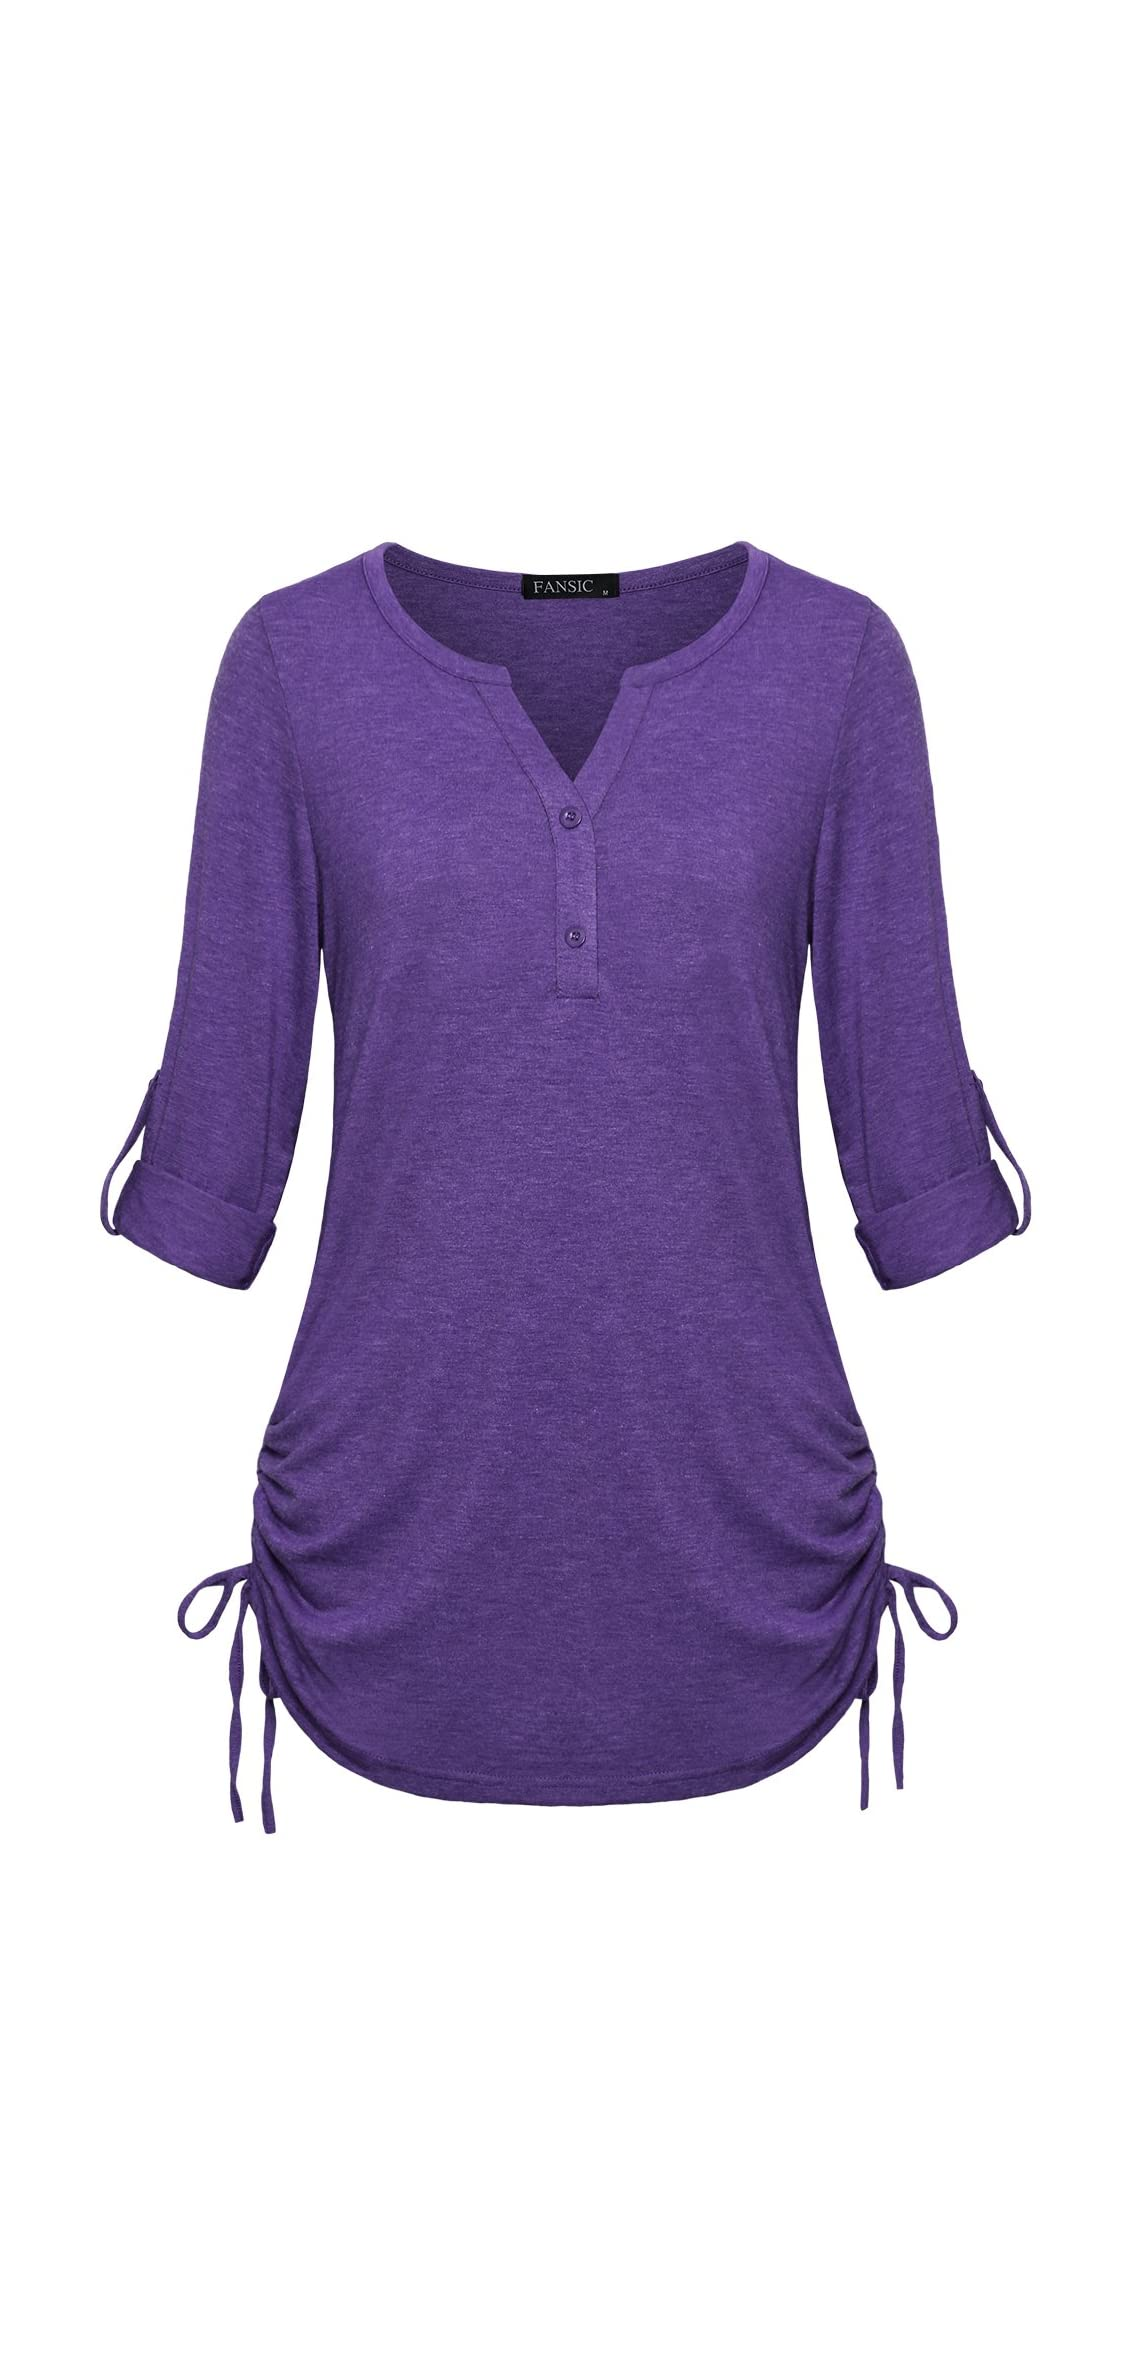 Womens Casual Long Sleeve Blouse Tops,/ Sleeves Sides